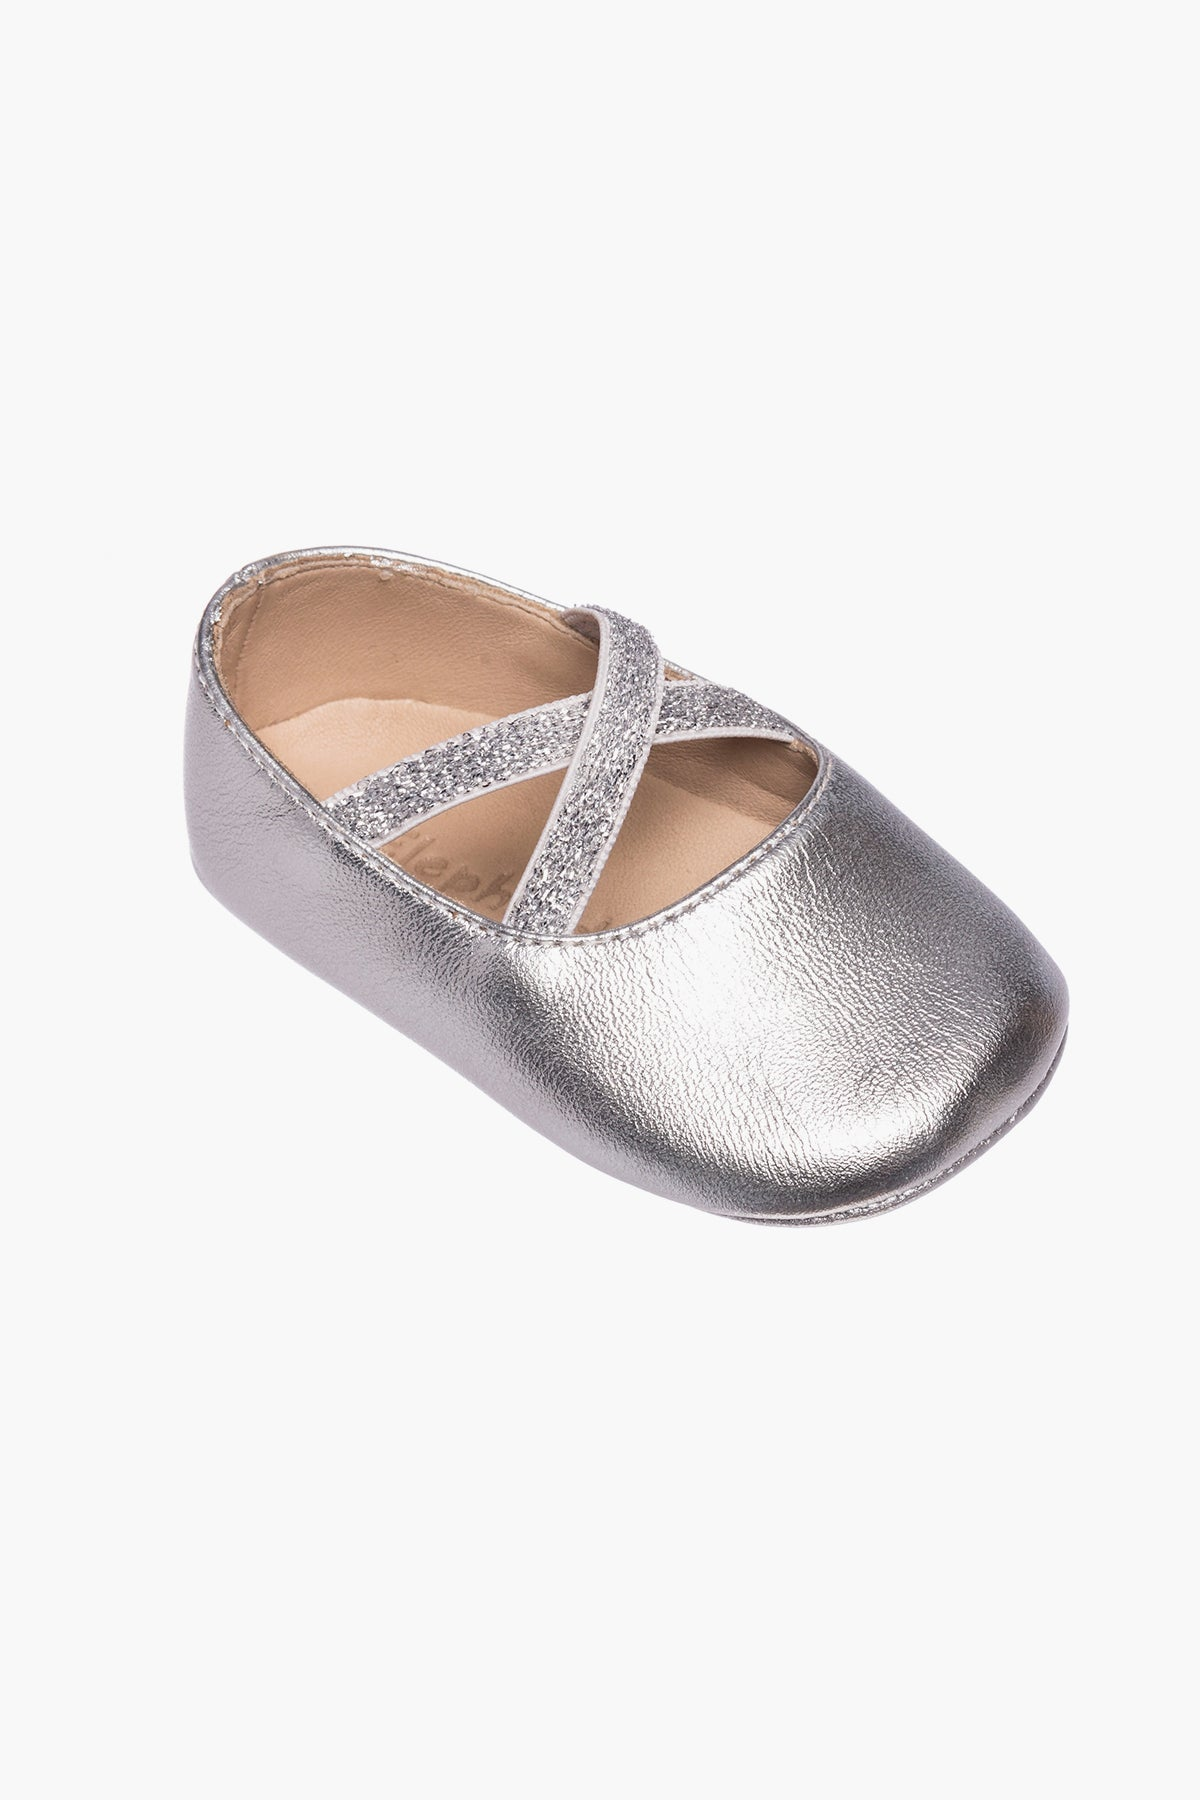 Elephantito Crossed Ballerina Baby Shoes